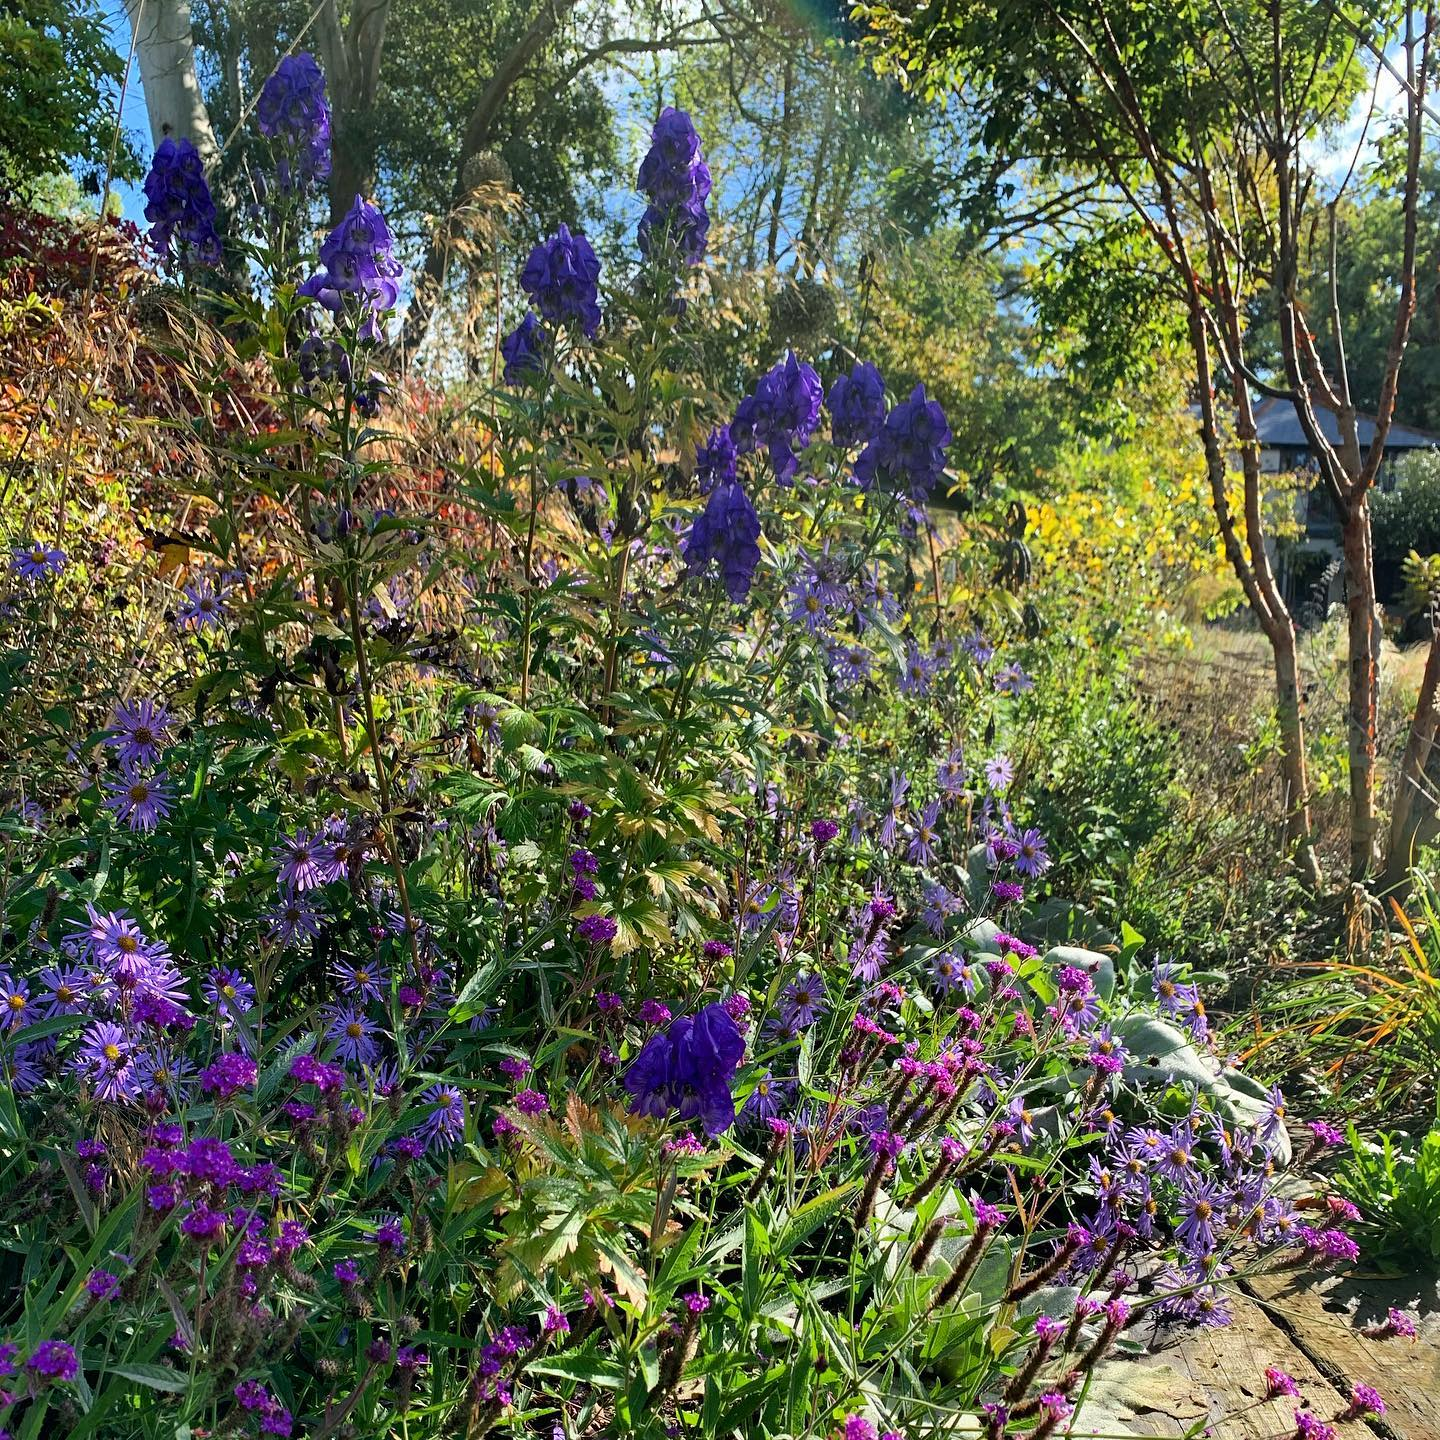 Aconites are stealing the show in my Autumn garden, the rich blues along with the purples and mauves of asters and verbena are a great compliment to the autumnal oranges and yellows of the surrounding foliage.